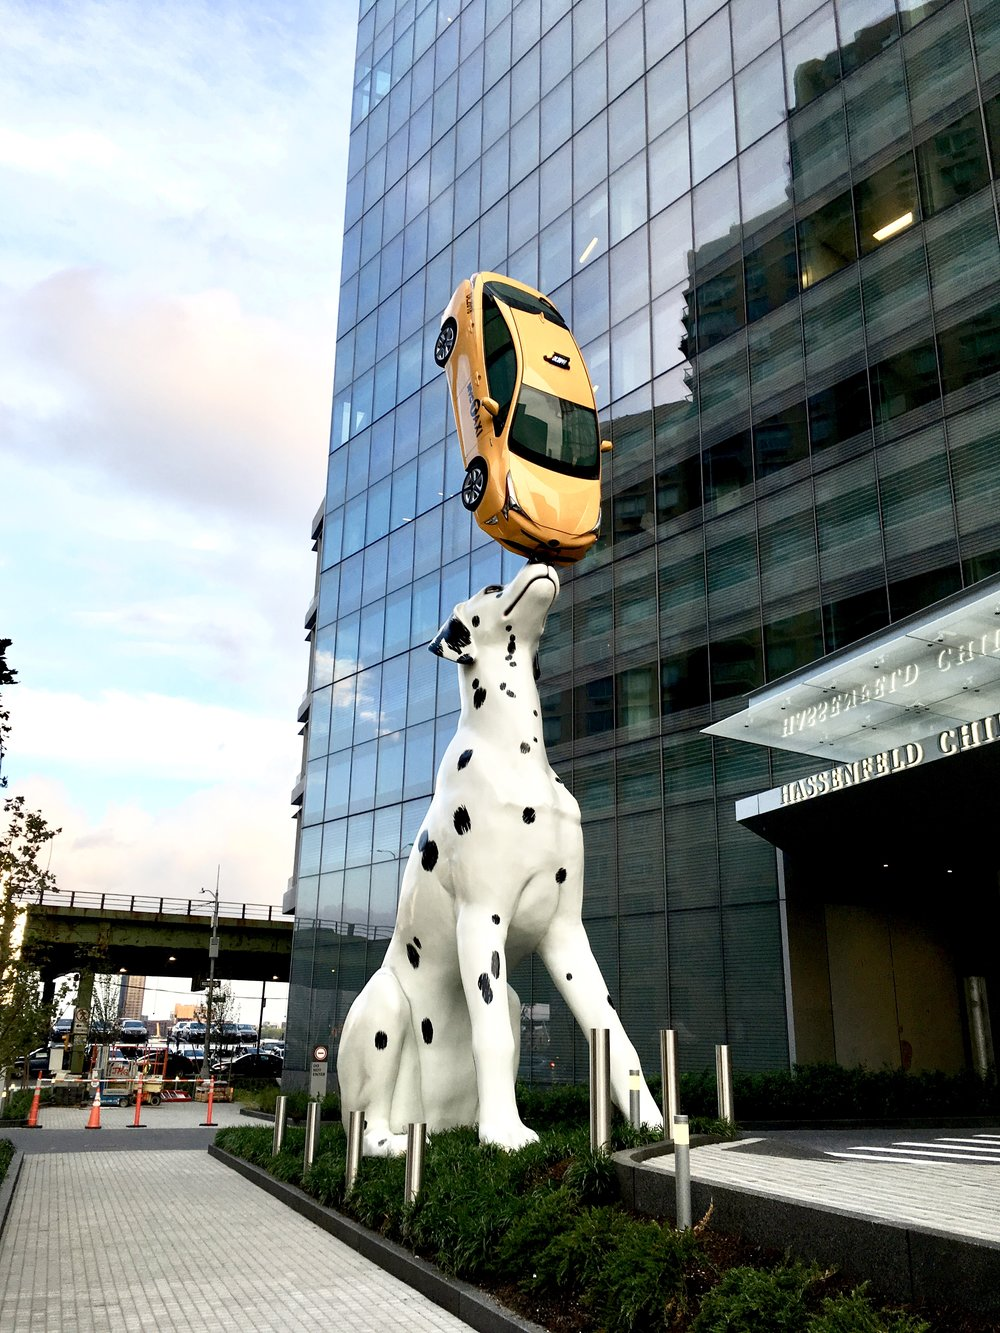 SPOT Dalmatian Dog Holding Taxi on Nose